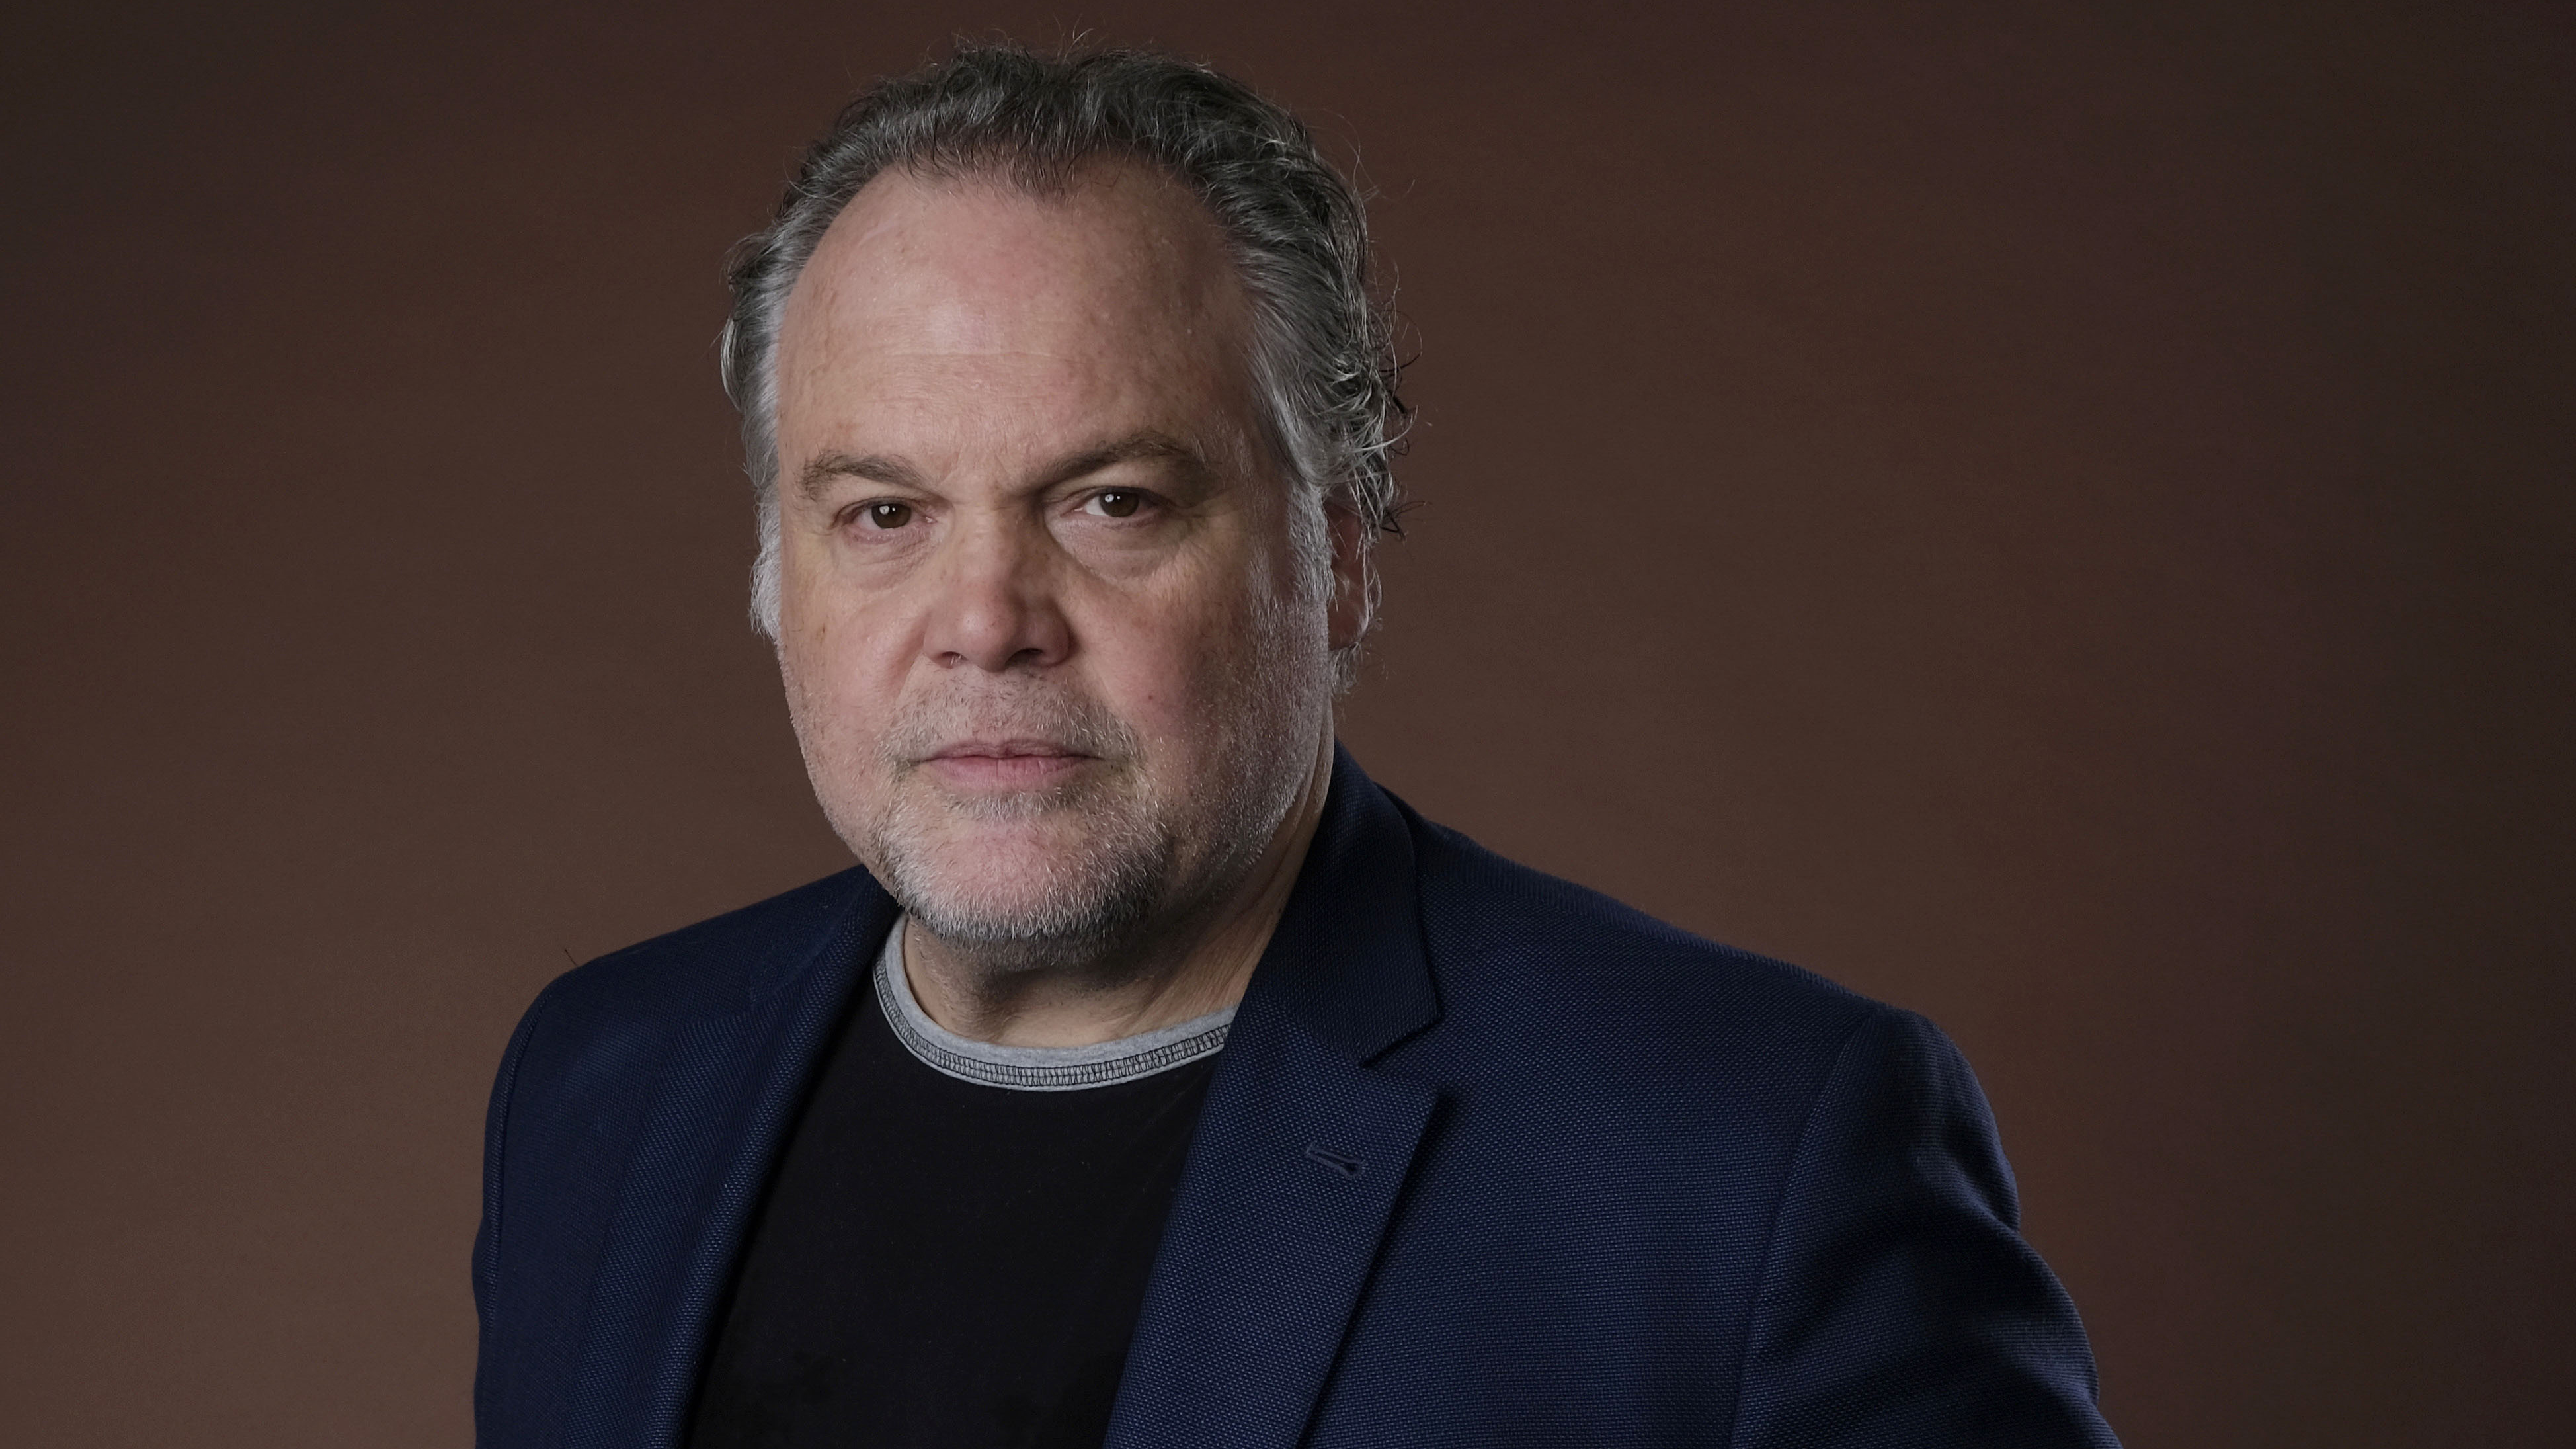 Vincent D'Onofrio shares a glimpse inside his mind in new book of musings